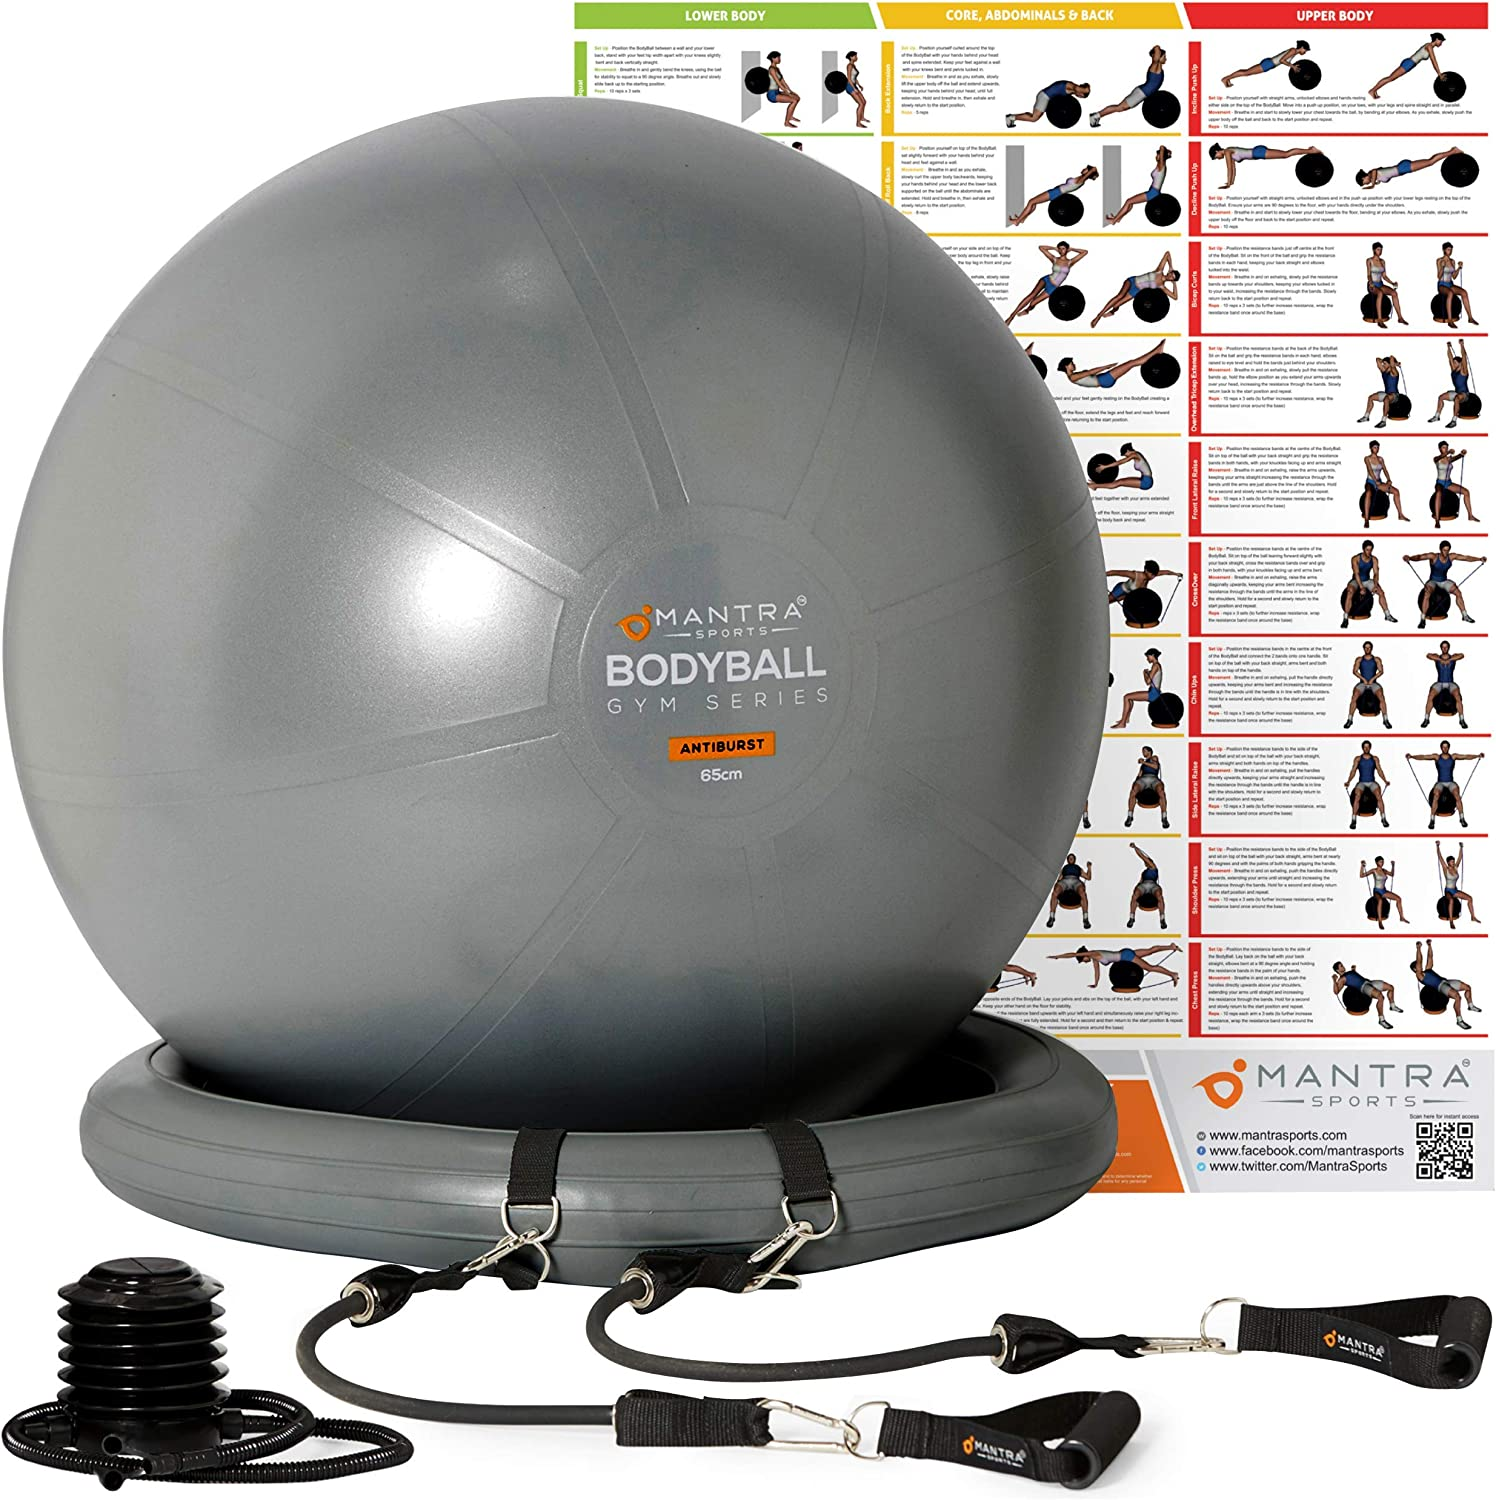 Exercise Ball Chair - 55cm / 65cm / 75cm Yoga Fitness Pilates Ball & Stability Base for Home Gym & Office - Resistance Bands, Workout Poster & Pump. Improve Balance, Core Strength & Posture